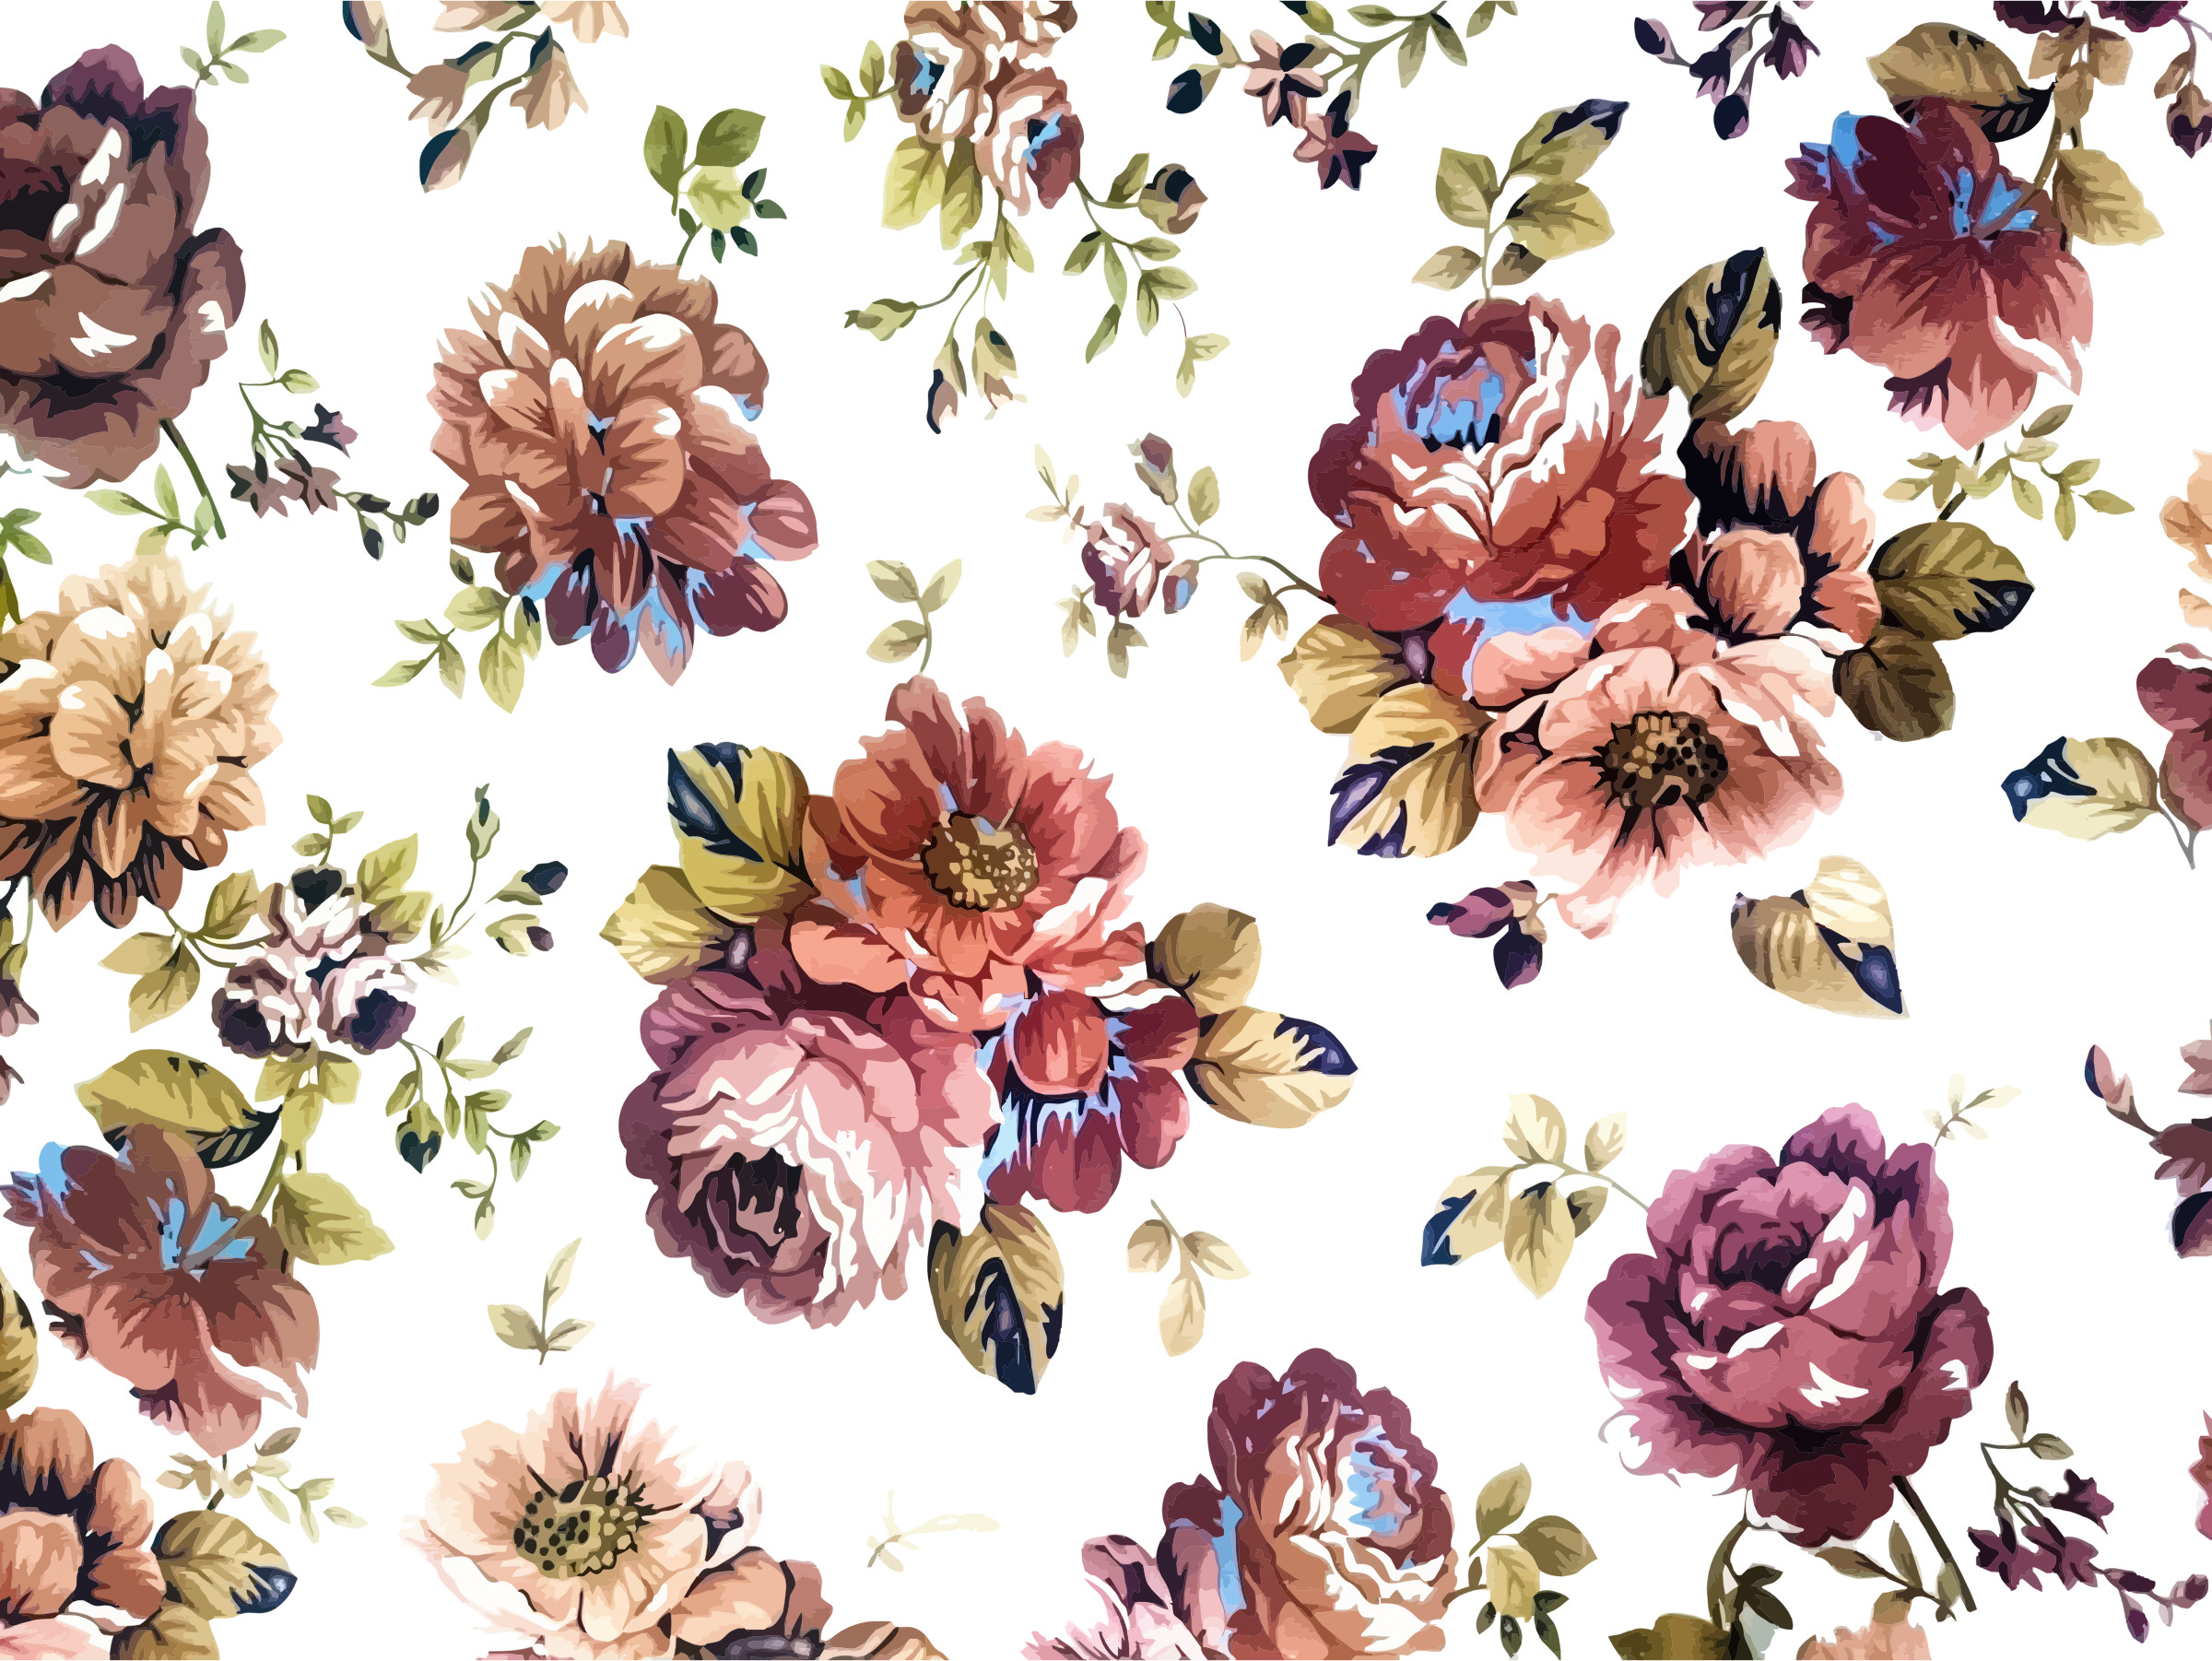 Vintage Flower Background Png (#930446).